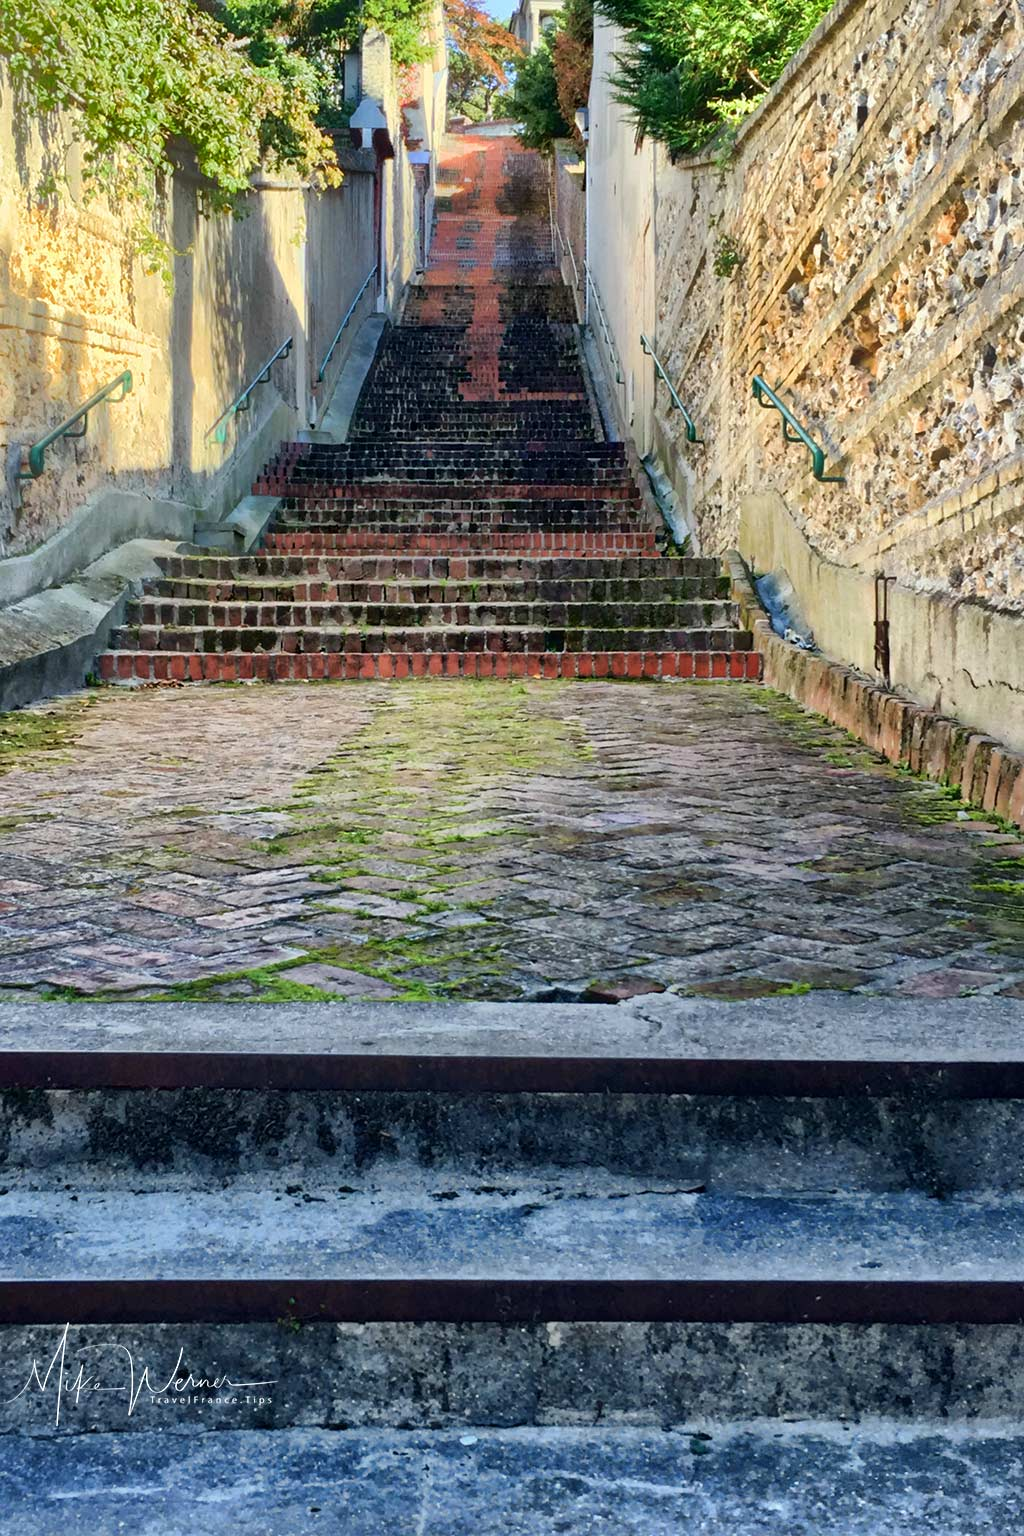 The stairs named Escalier de-la-Cote-Morisse in Le Havre, Normandy